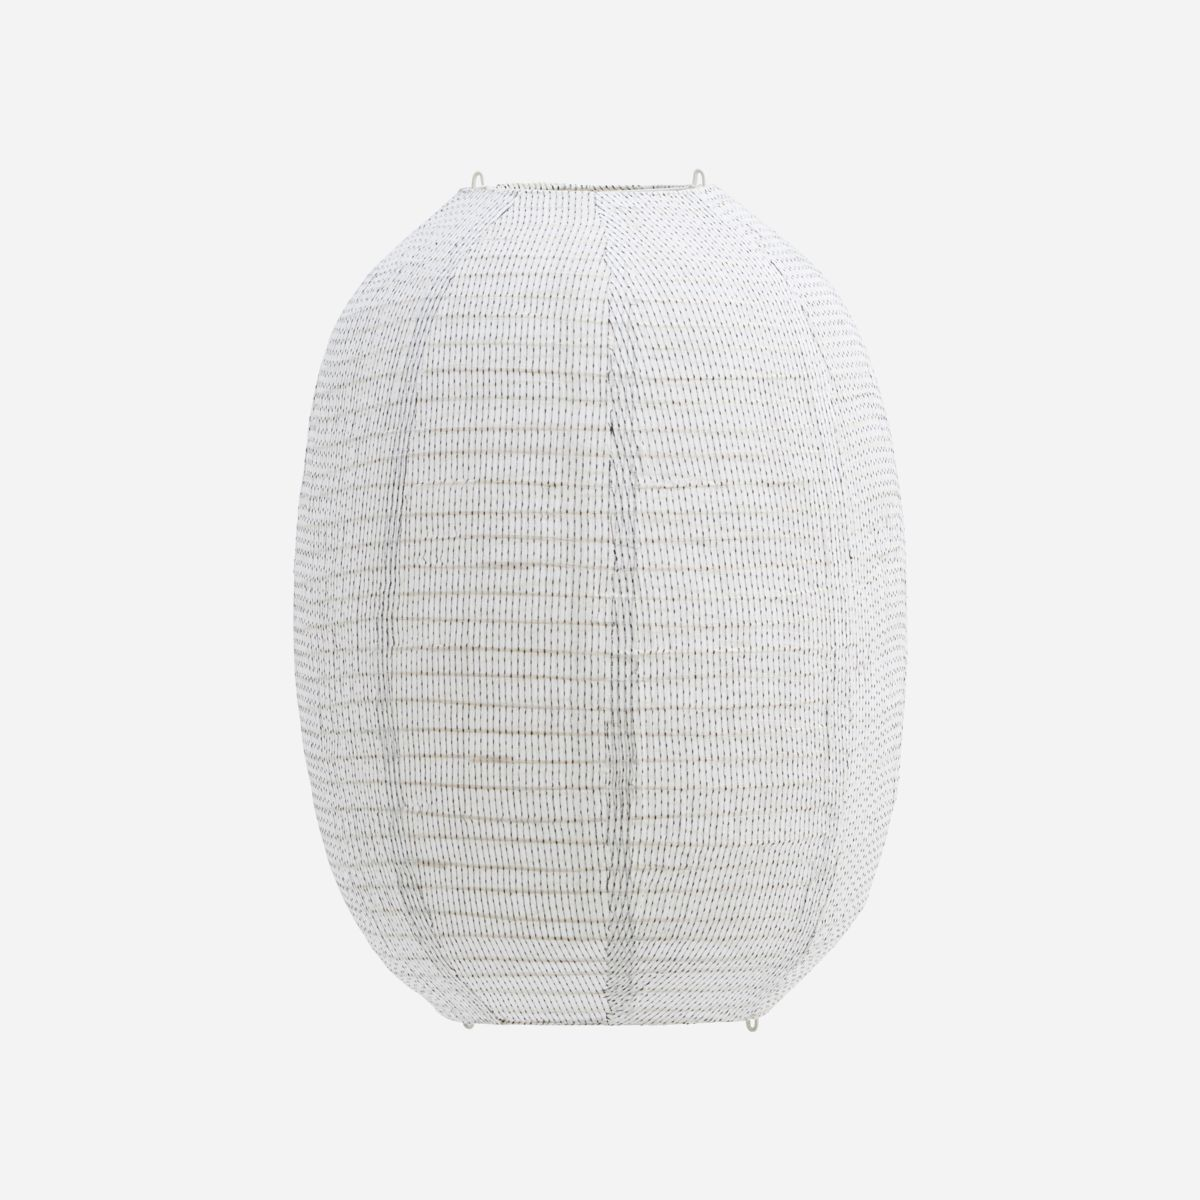 House Doctor Cotton Lampshade Stitch- 60cm